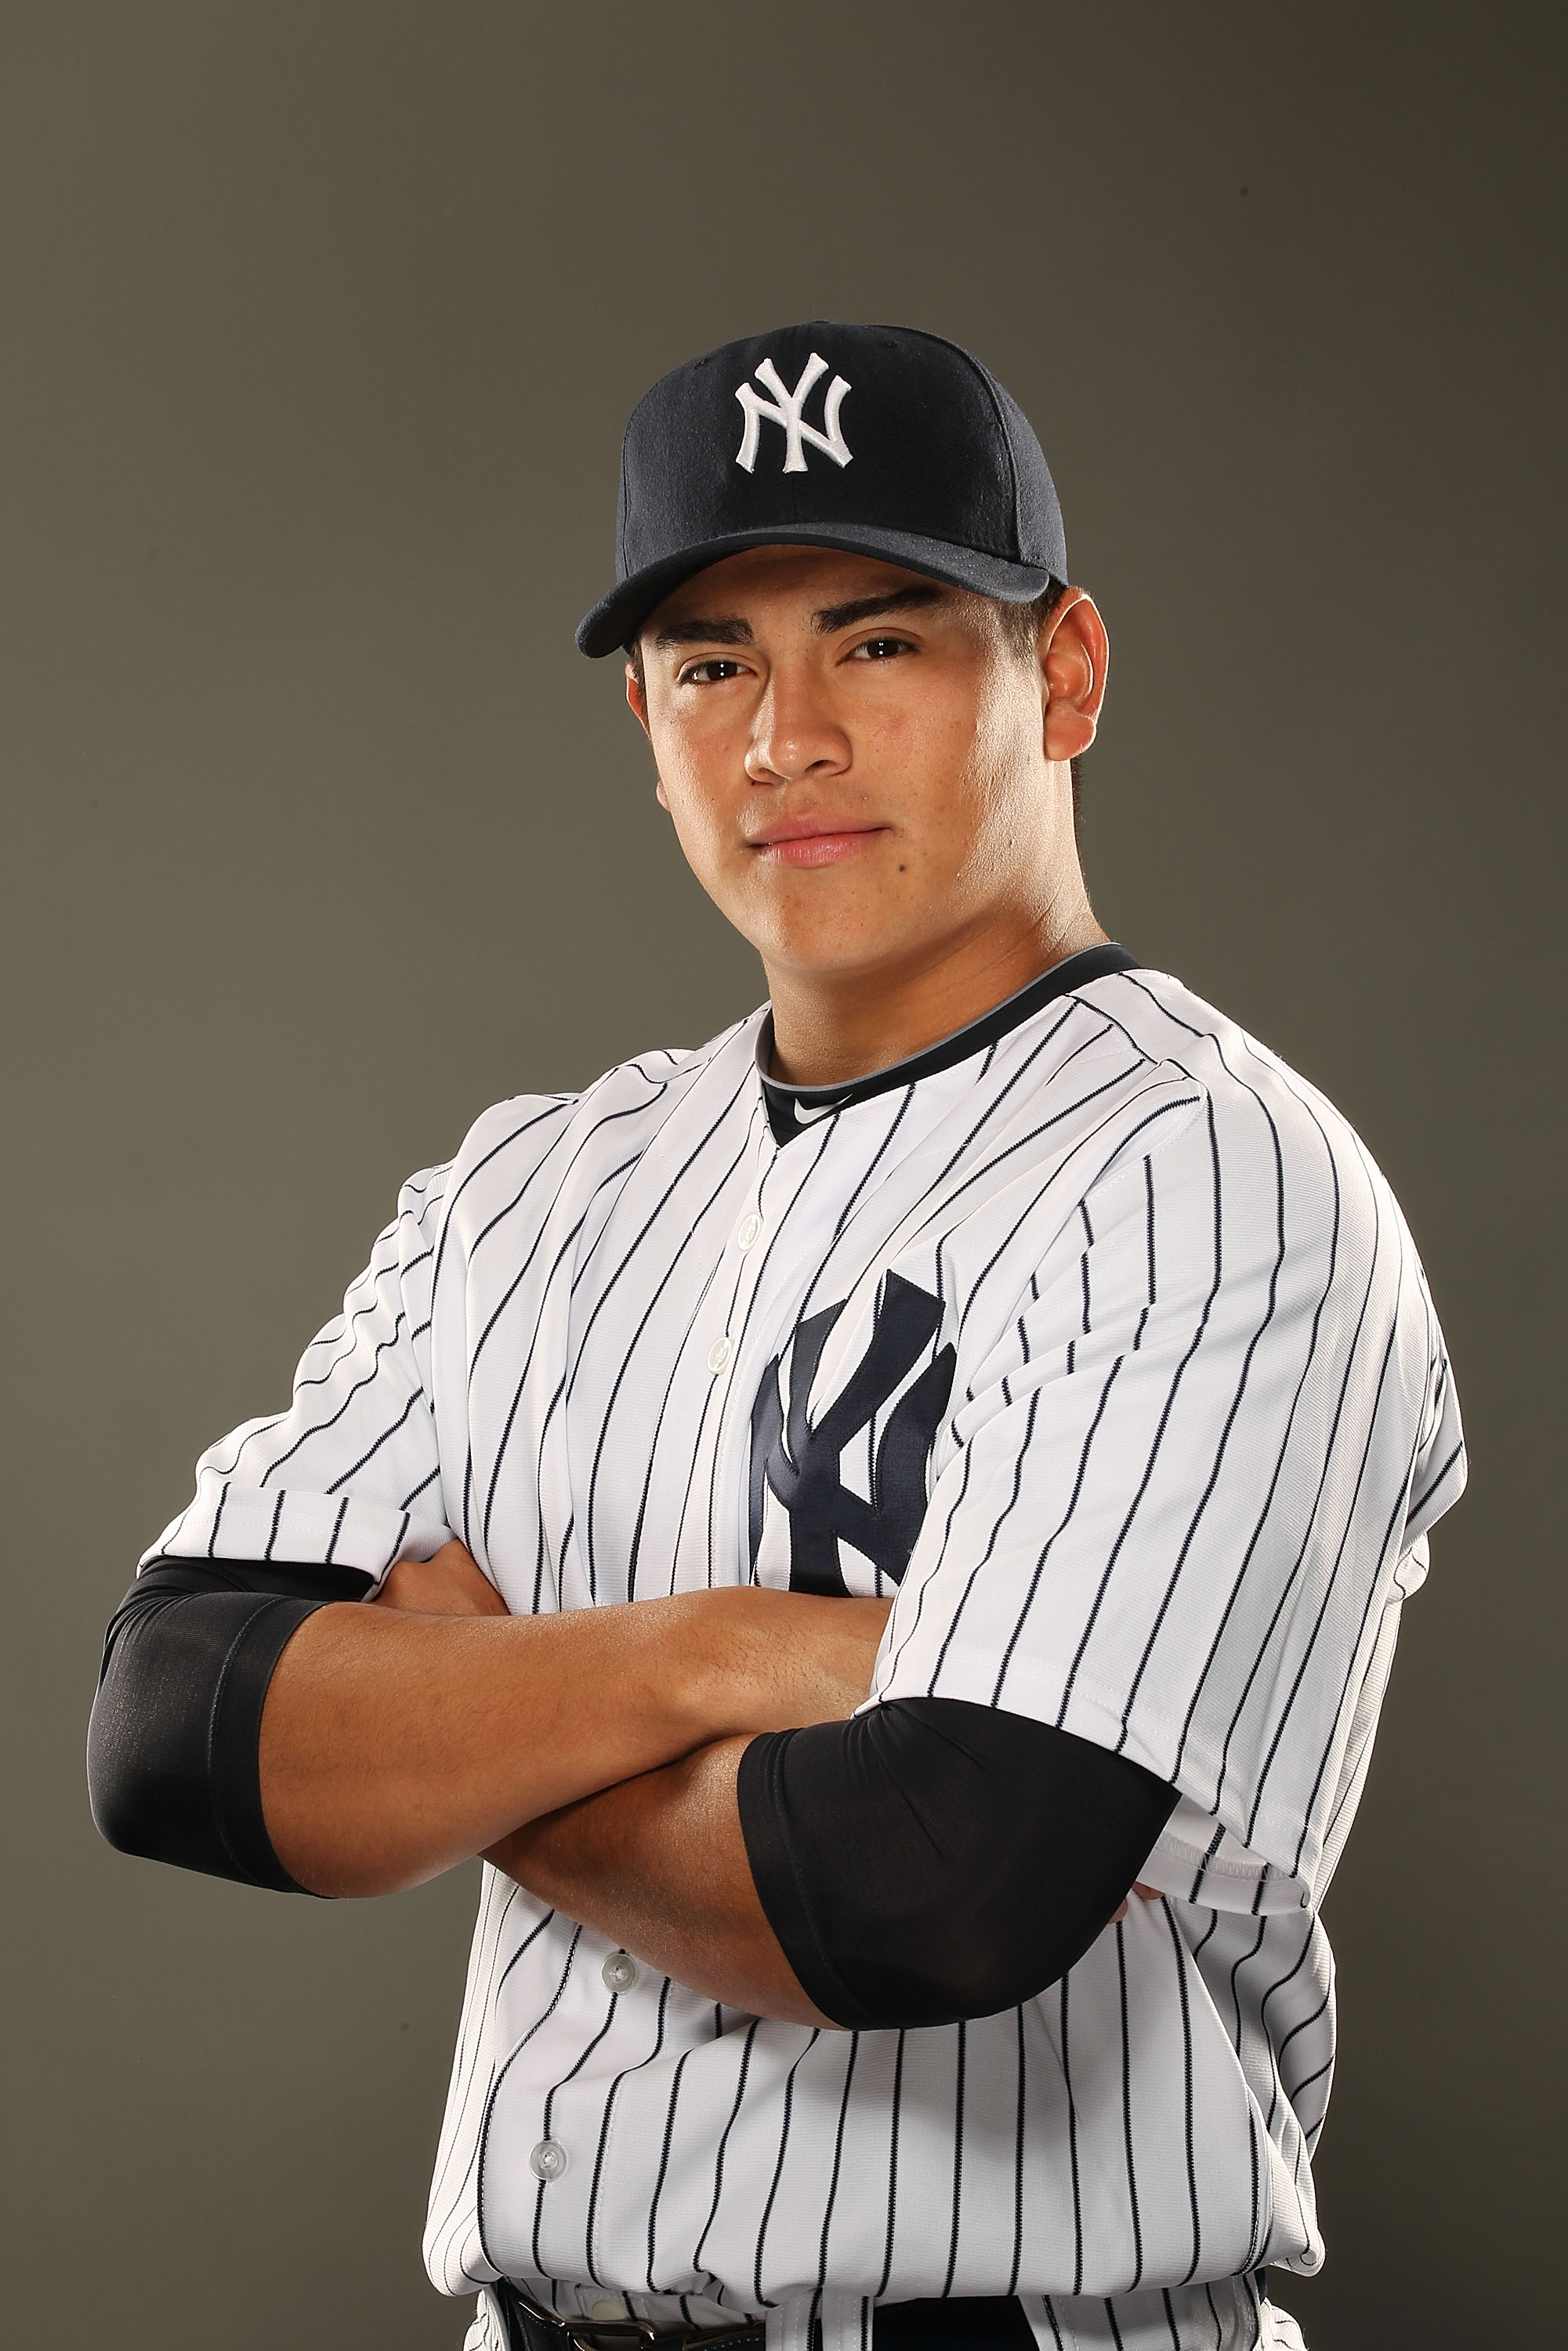 TAMPA, FL - FEBRUARY 23:  Manuel Banuelos #92 of the New York Yankees poses for a portrait on Photo Day at George M. Steinbrenner Field on February 23, 2011 in Tampa, Florida.  (Photo by Al Bello/Getty Images)